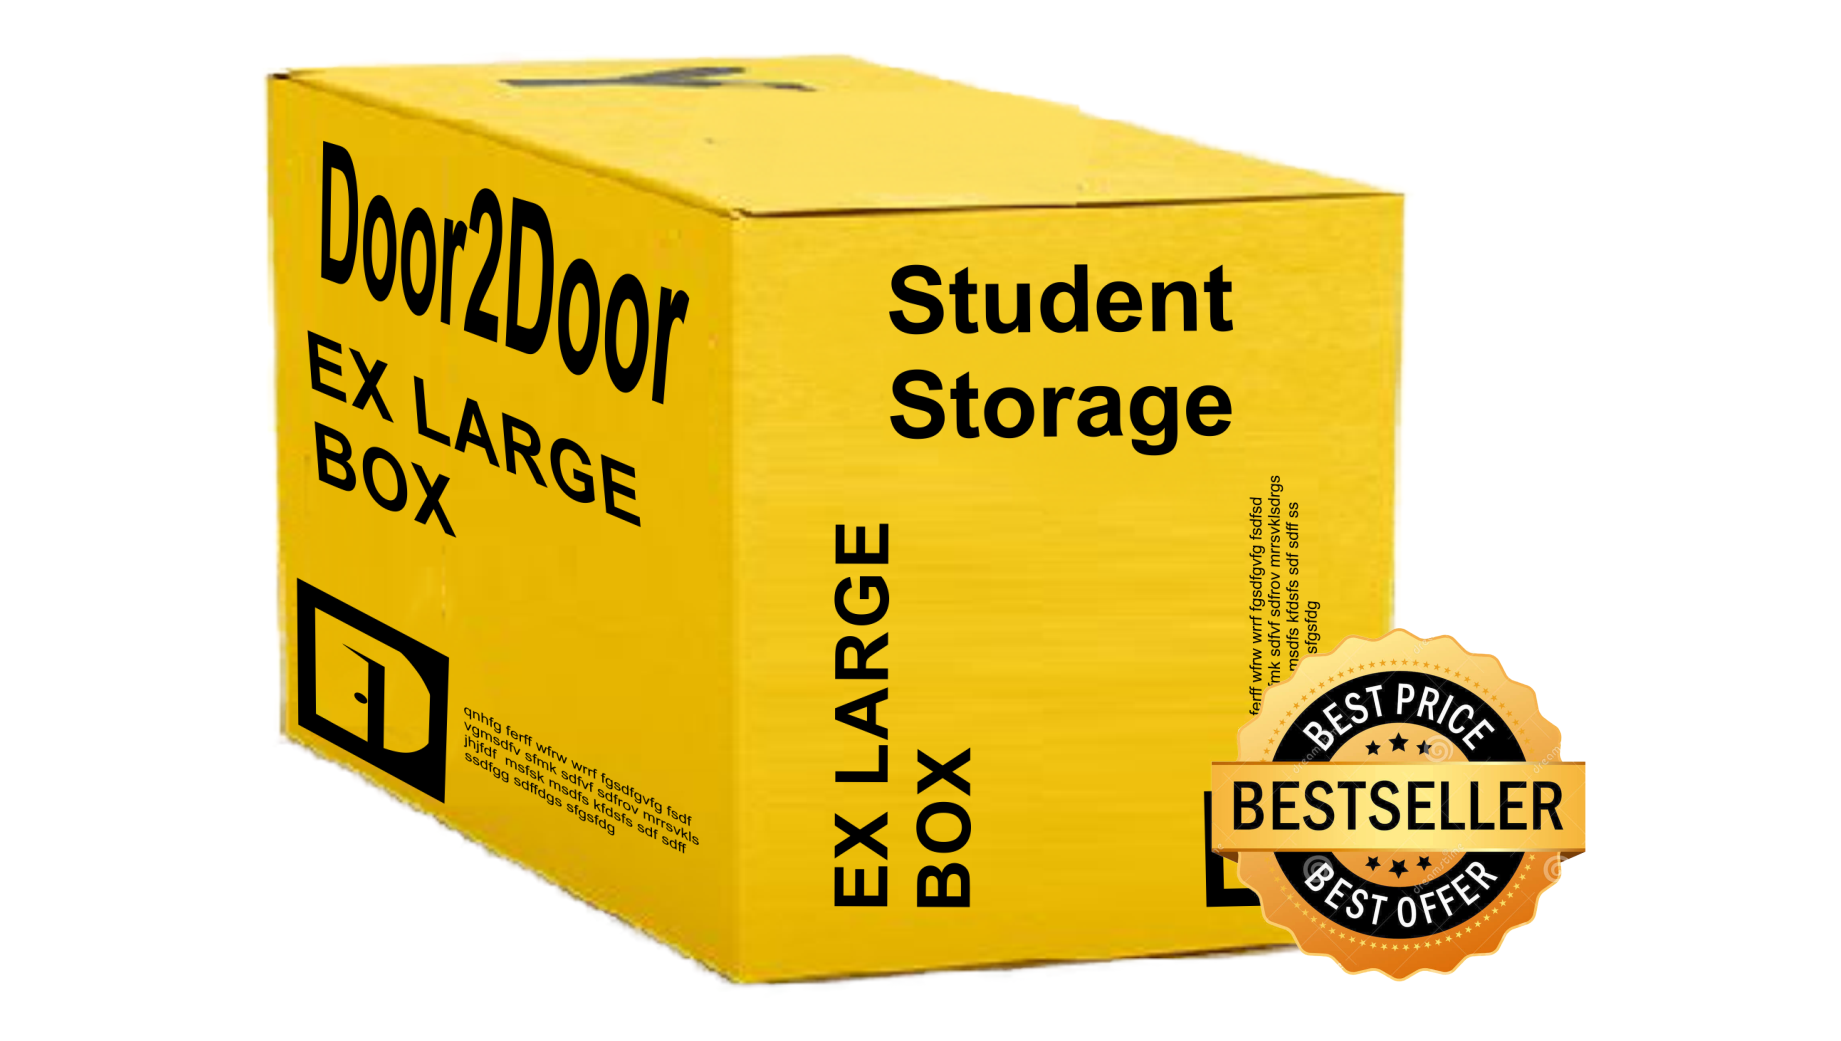 Door2DoorStudentStorage EXL Box